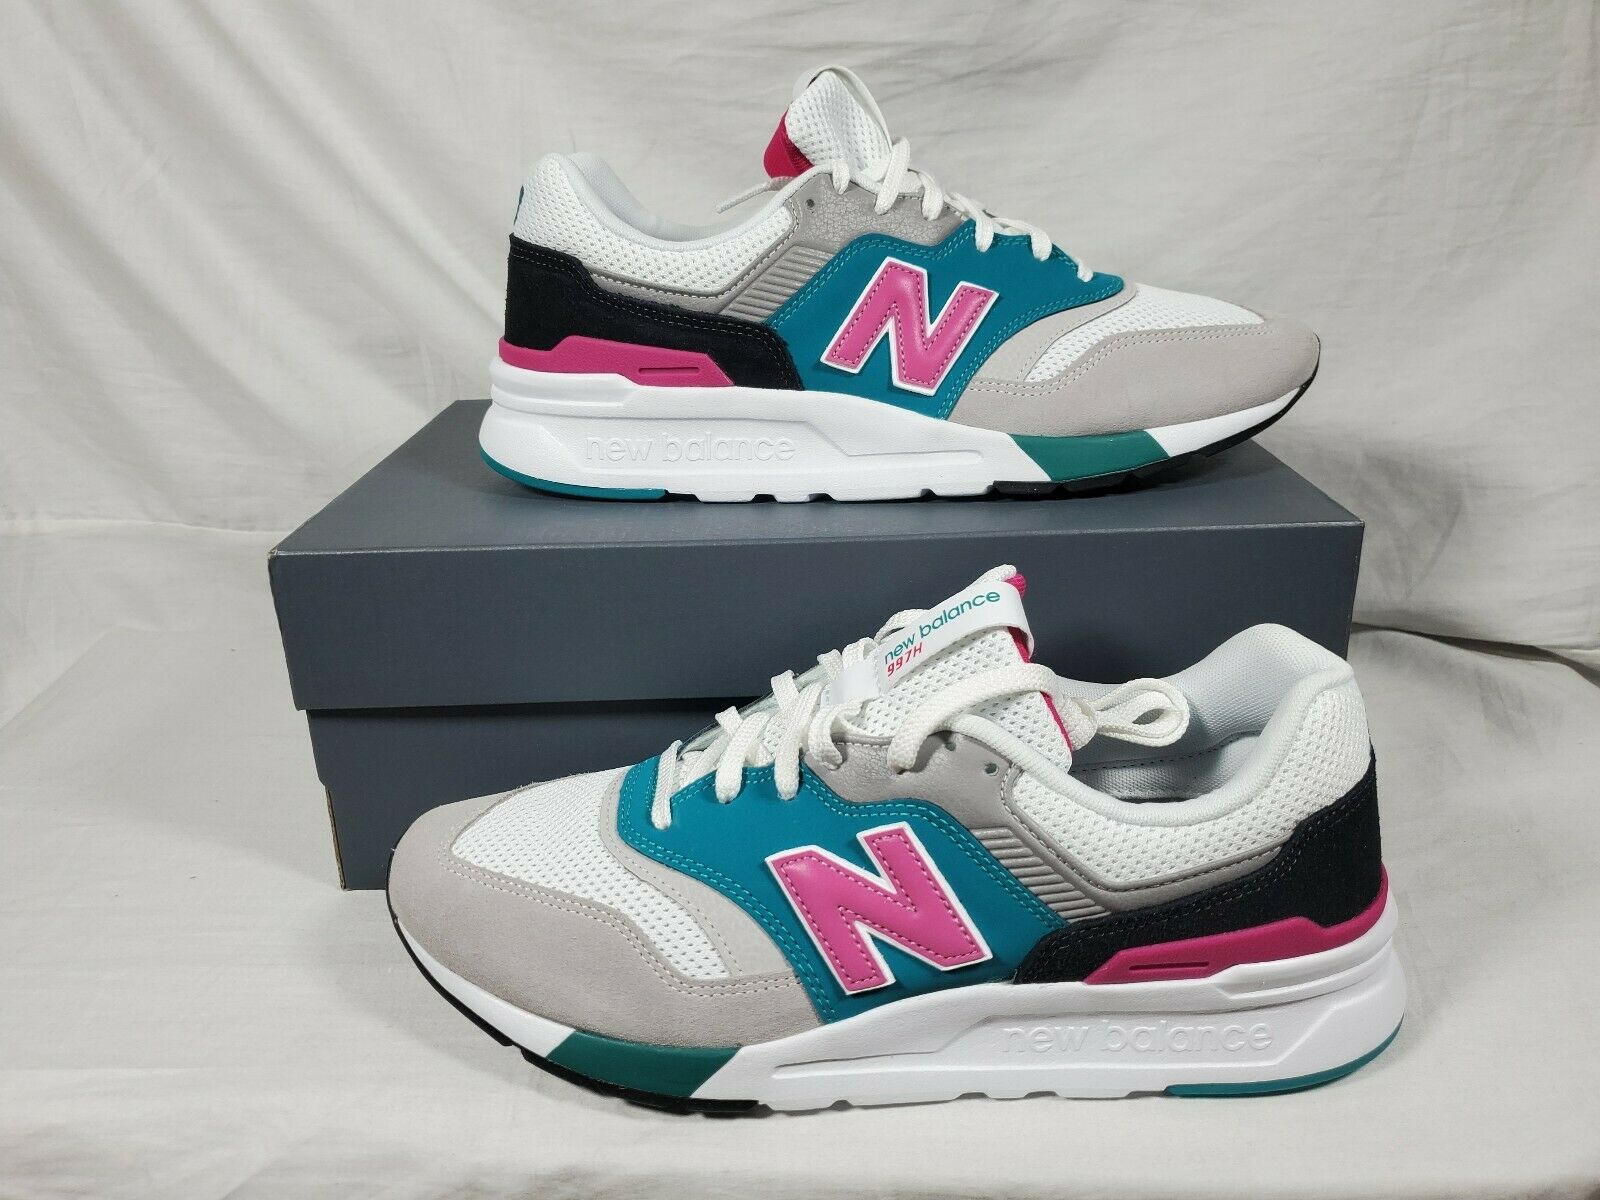 New Balance 997 H South Beach